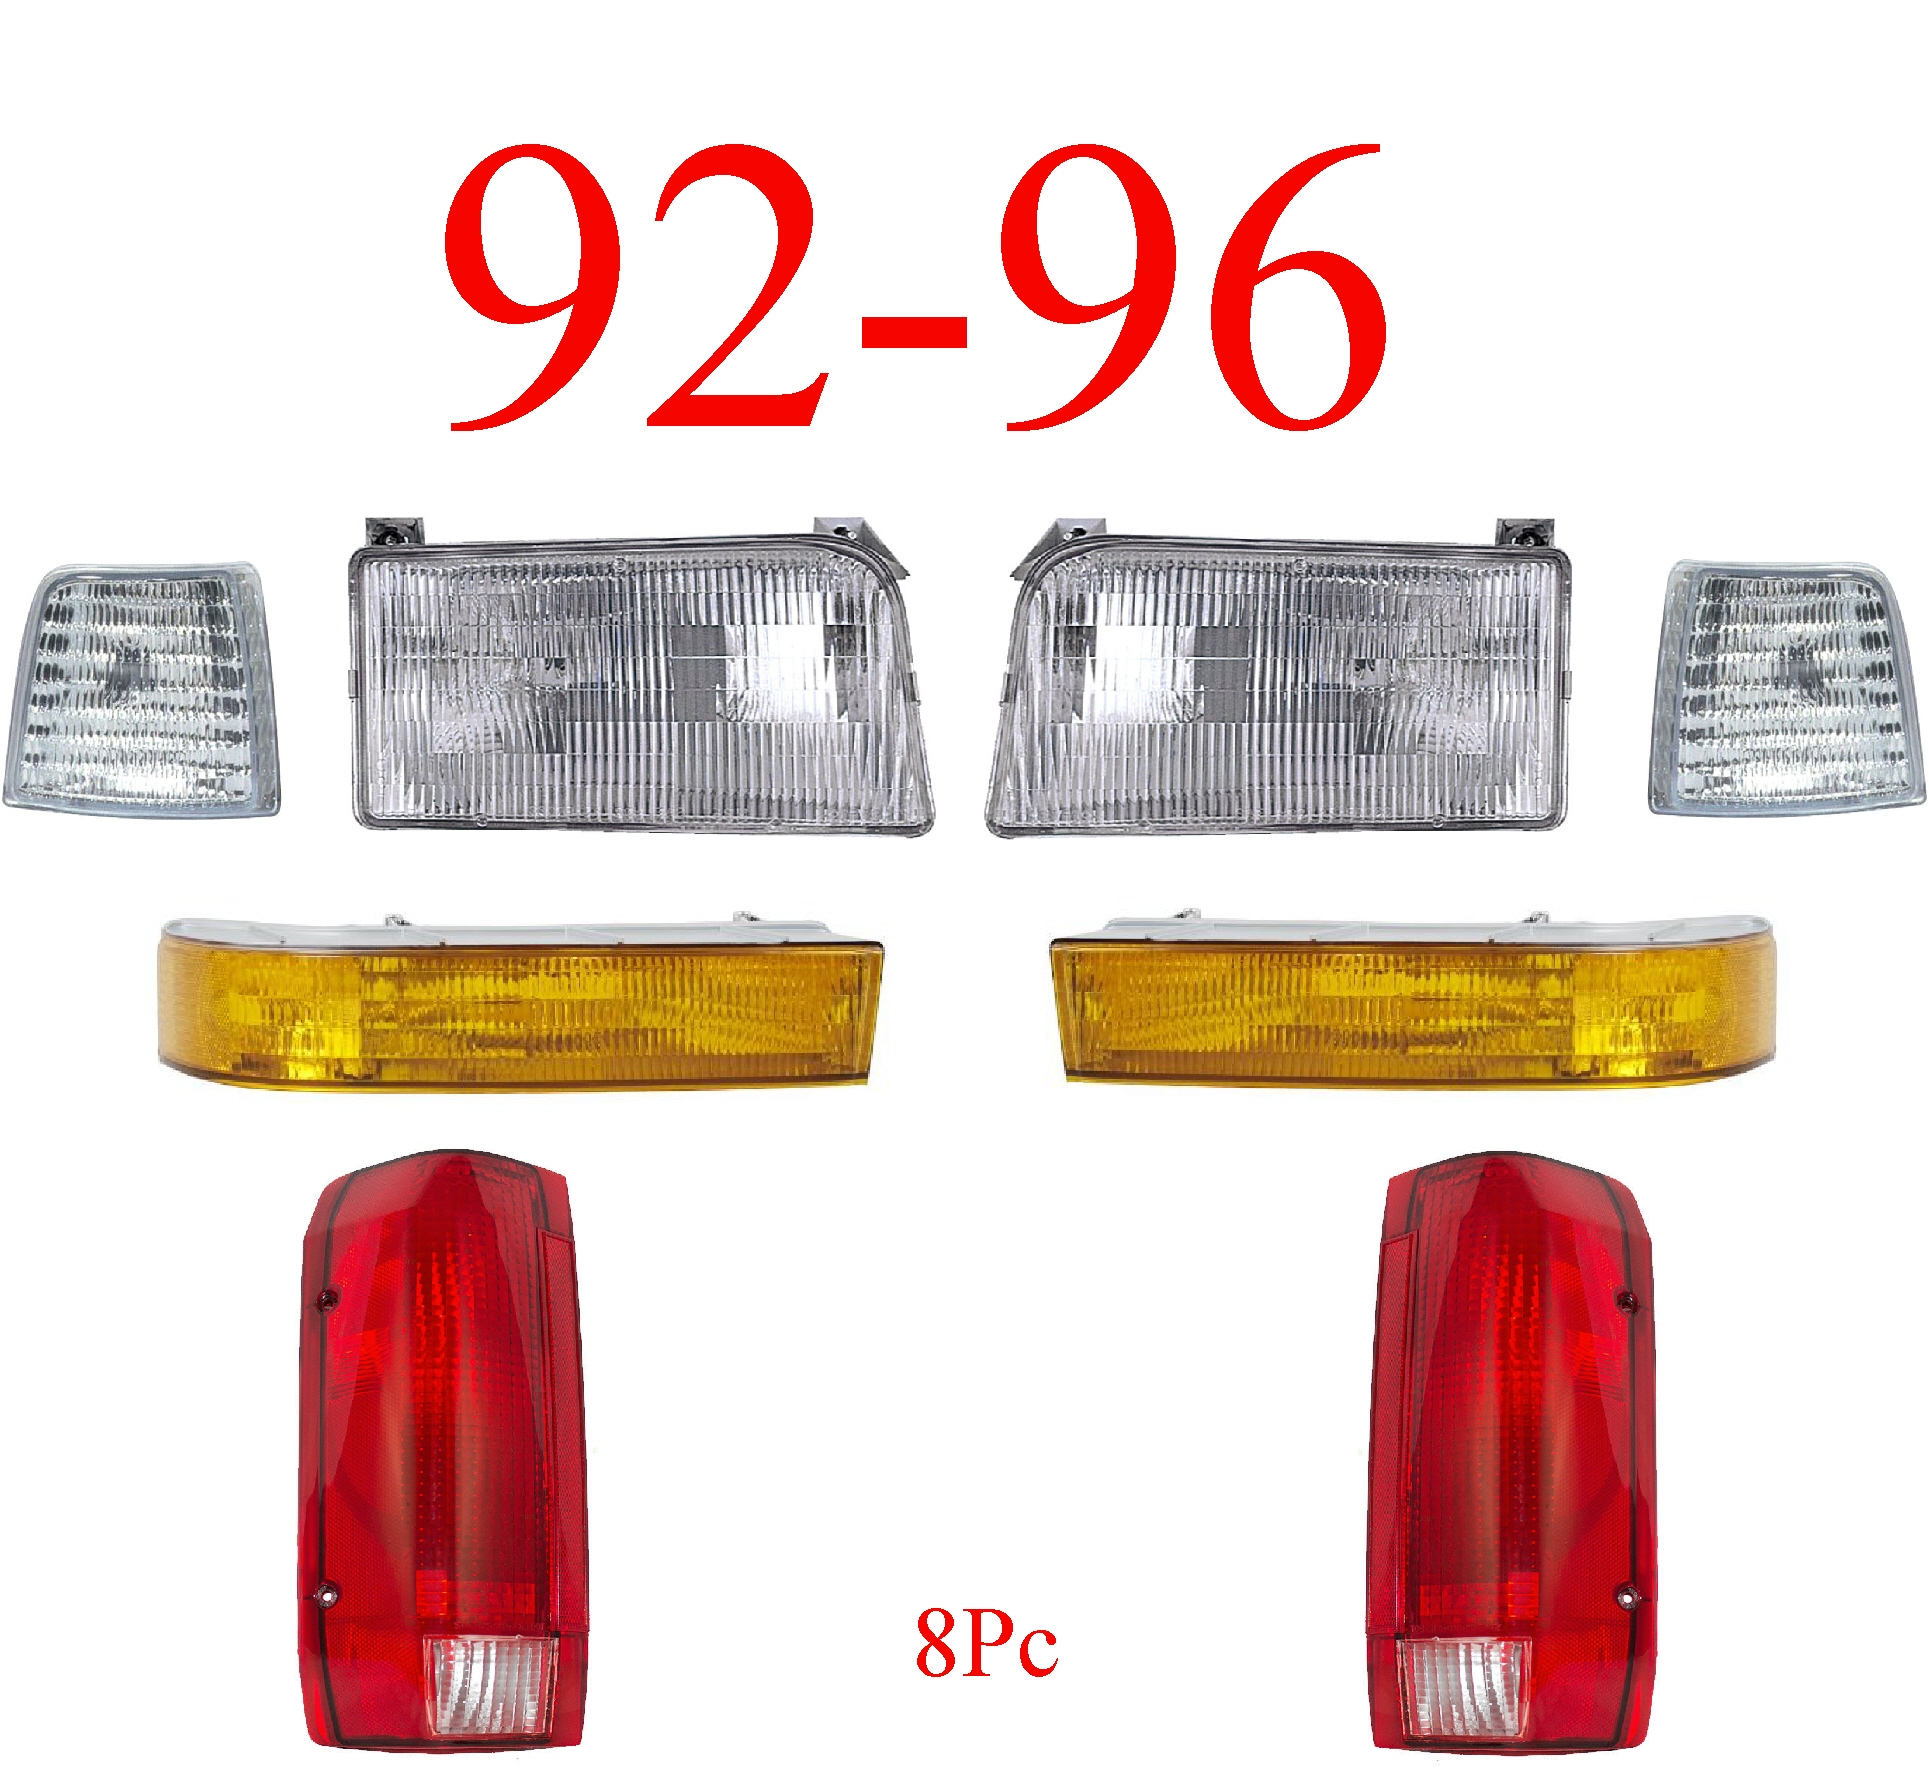 92-96 Ford 8Pc Head & Tail Light Kit